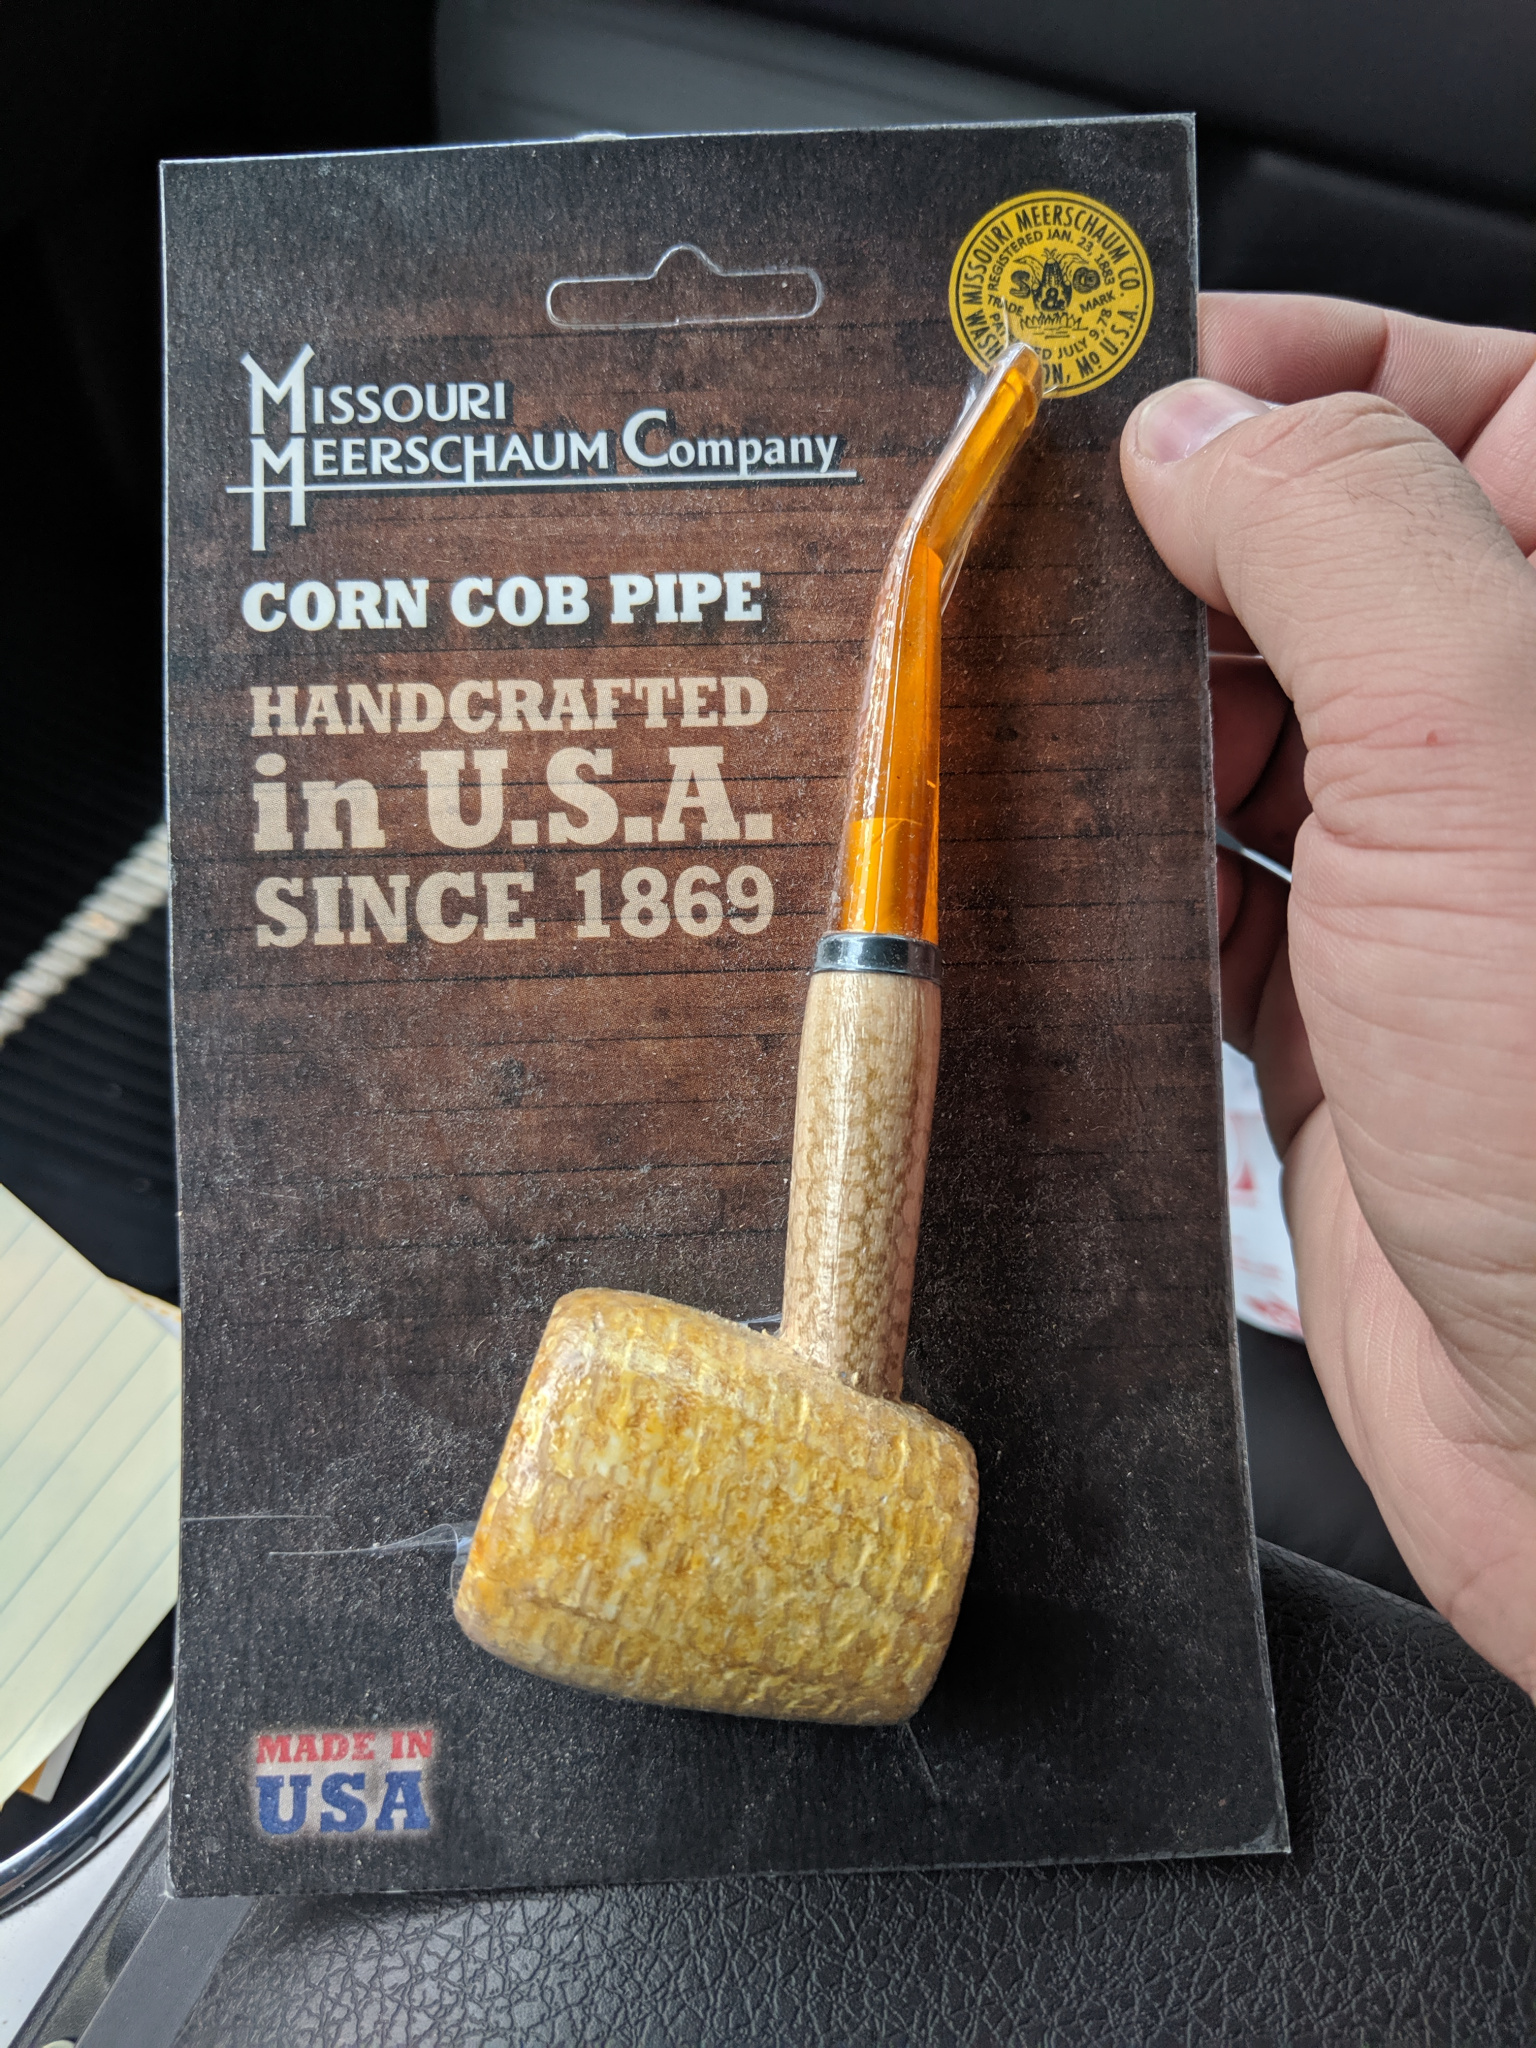 Whats your latest pipe purchase?-img_20190616_130334.jpg